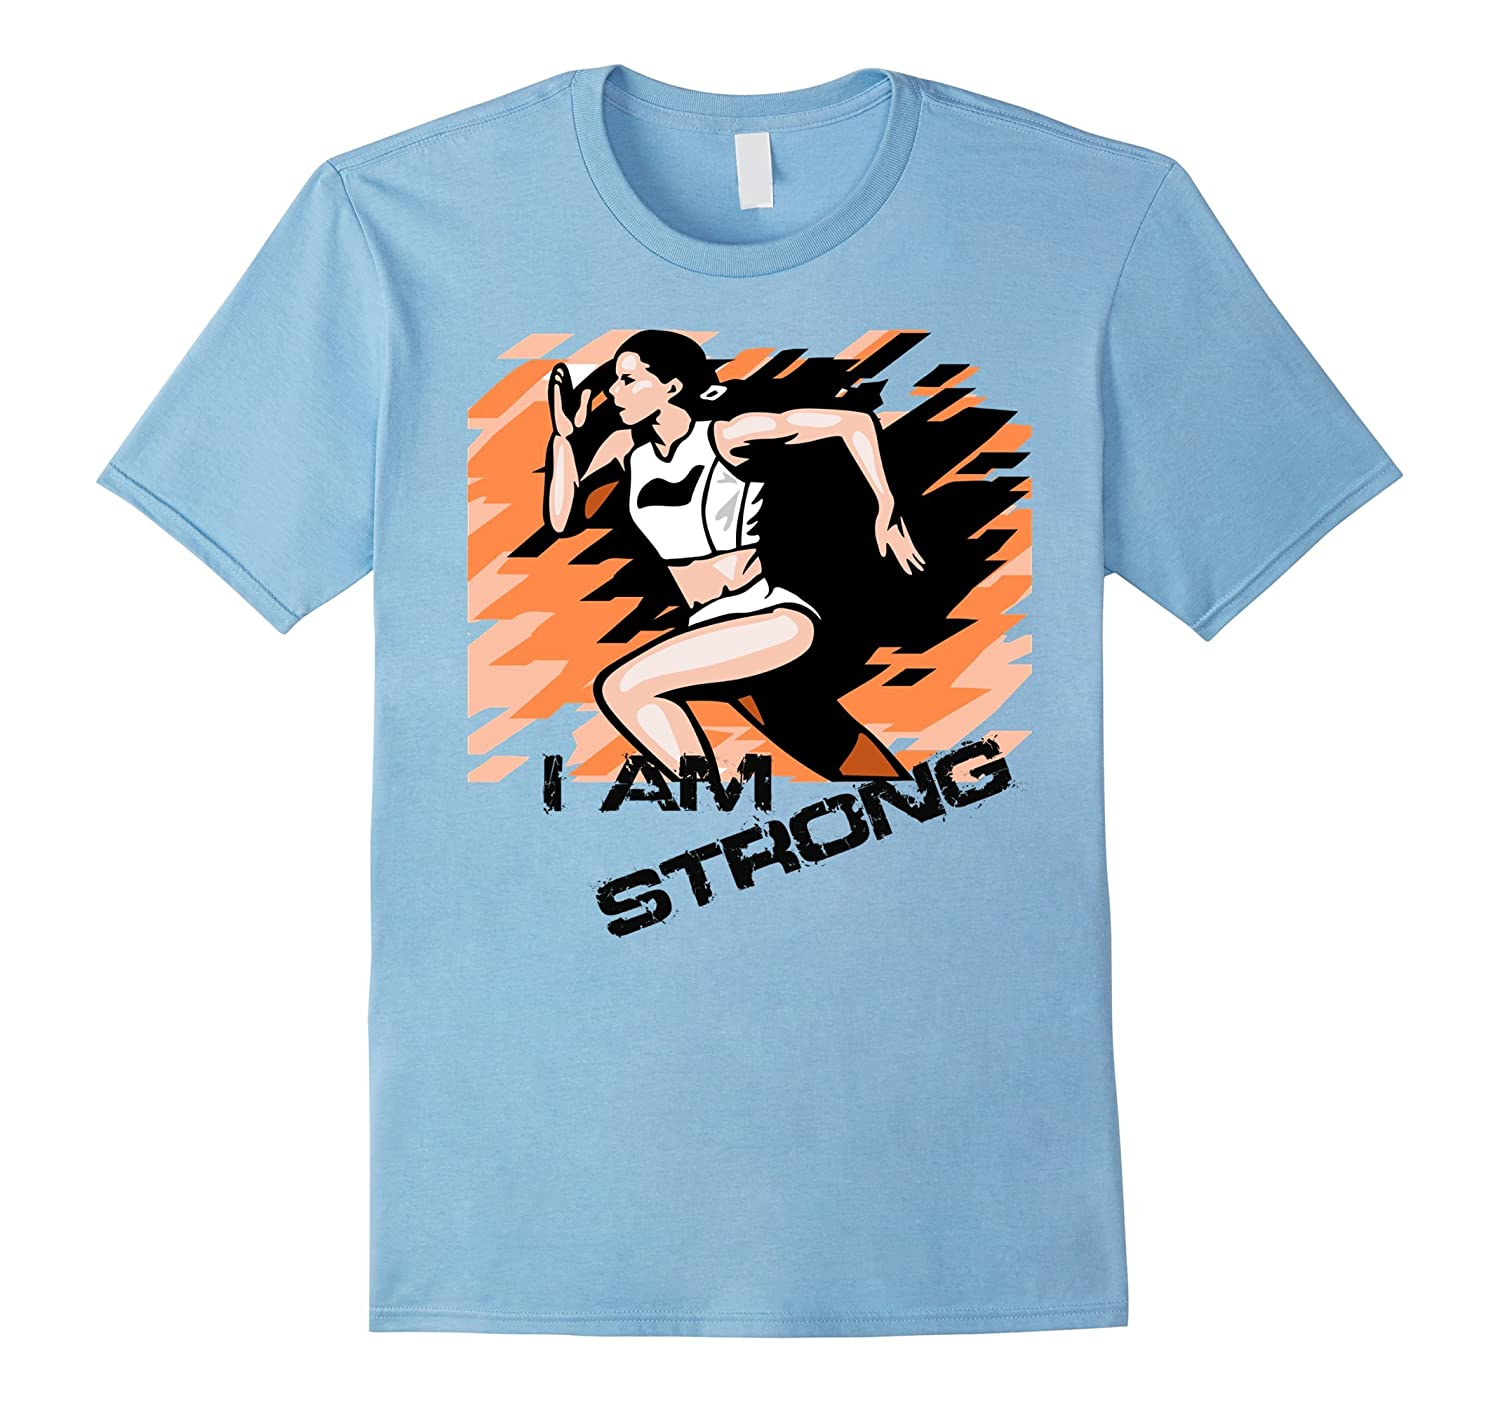 I Am Strong Running Marathon Race T-shirt Men Women Kids-Vaci